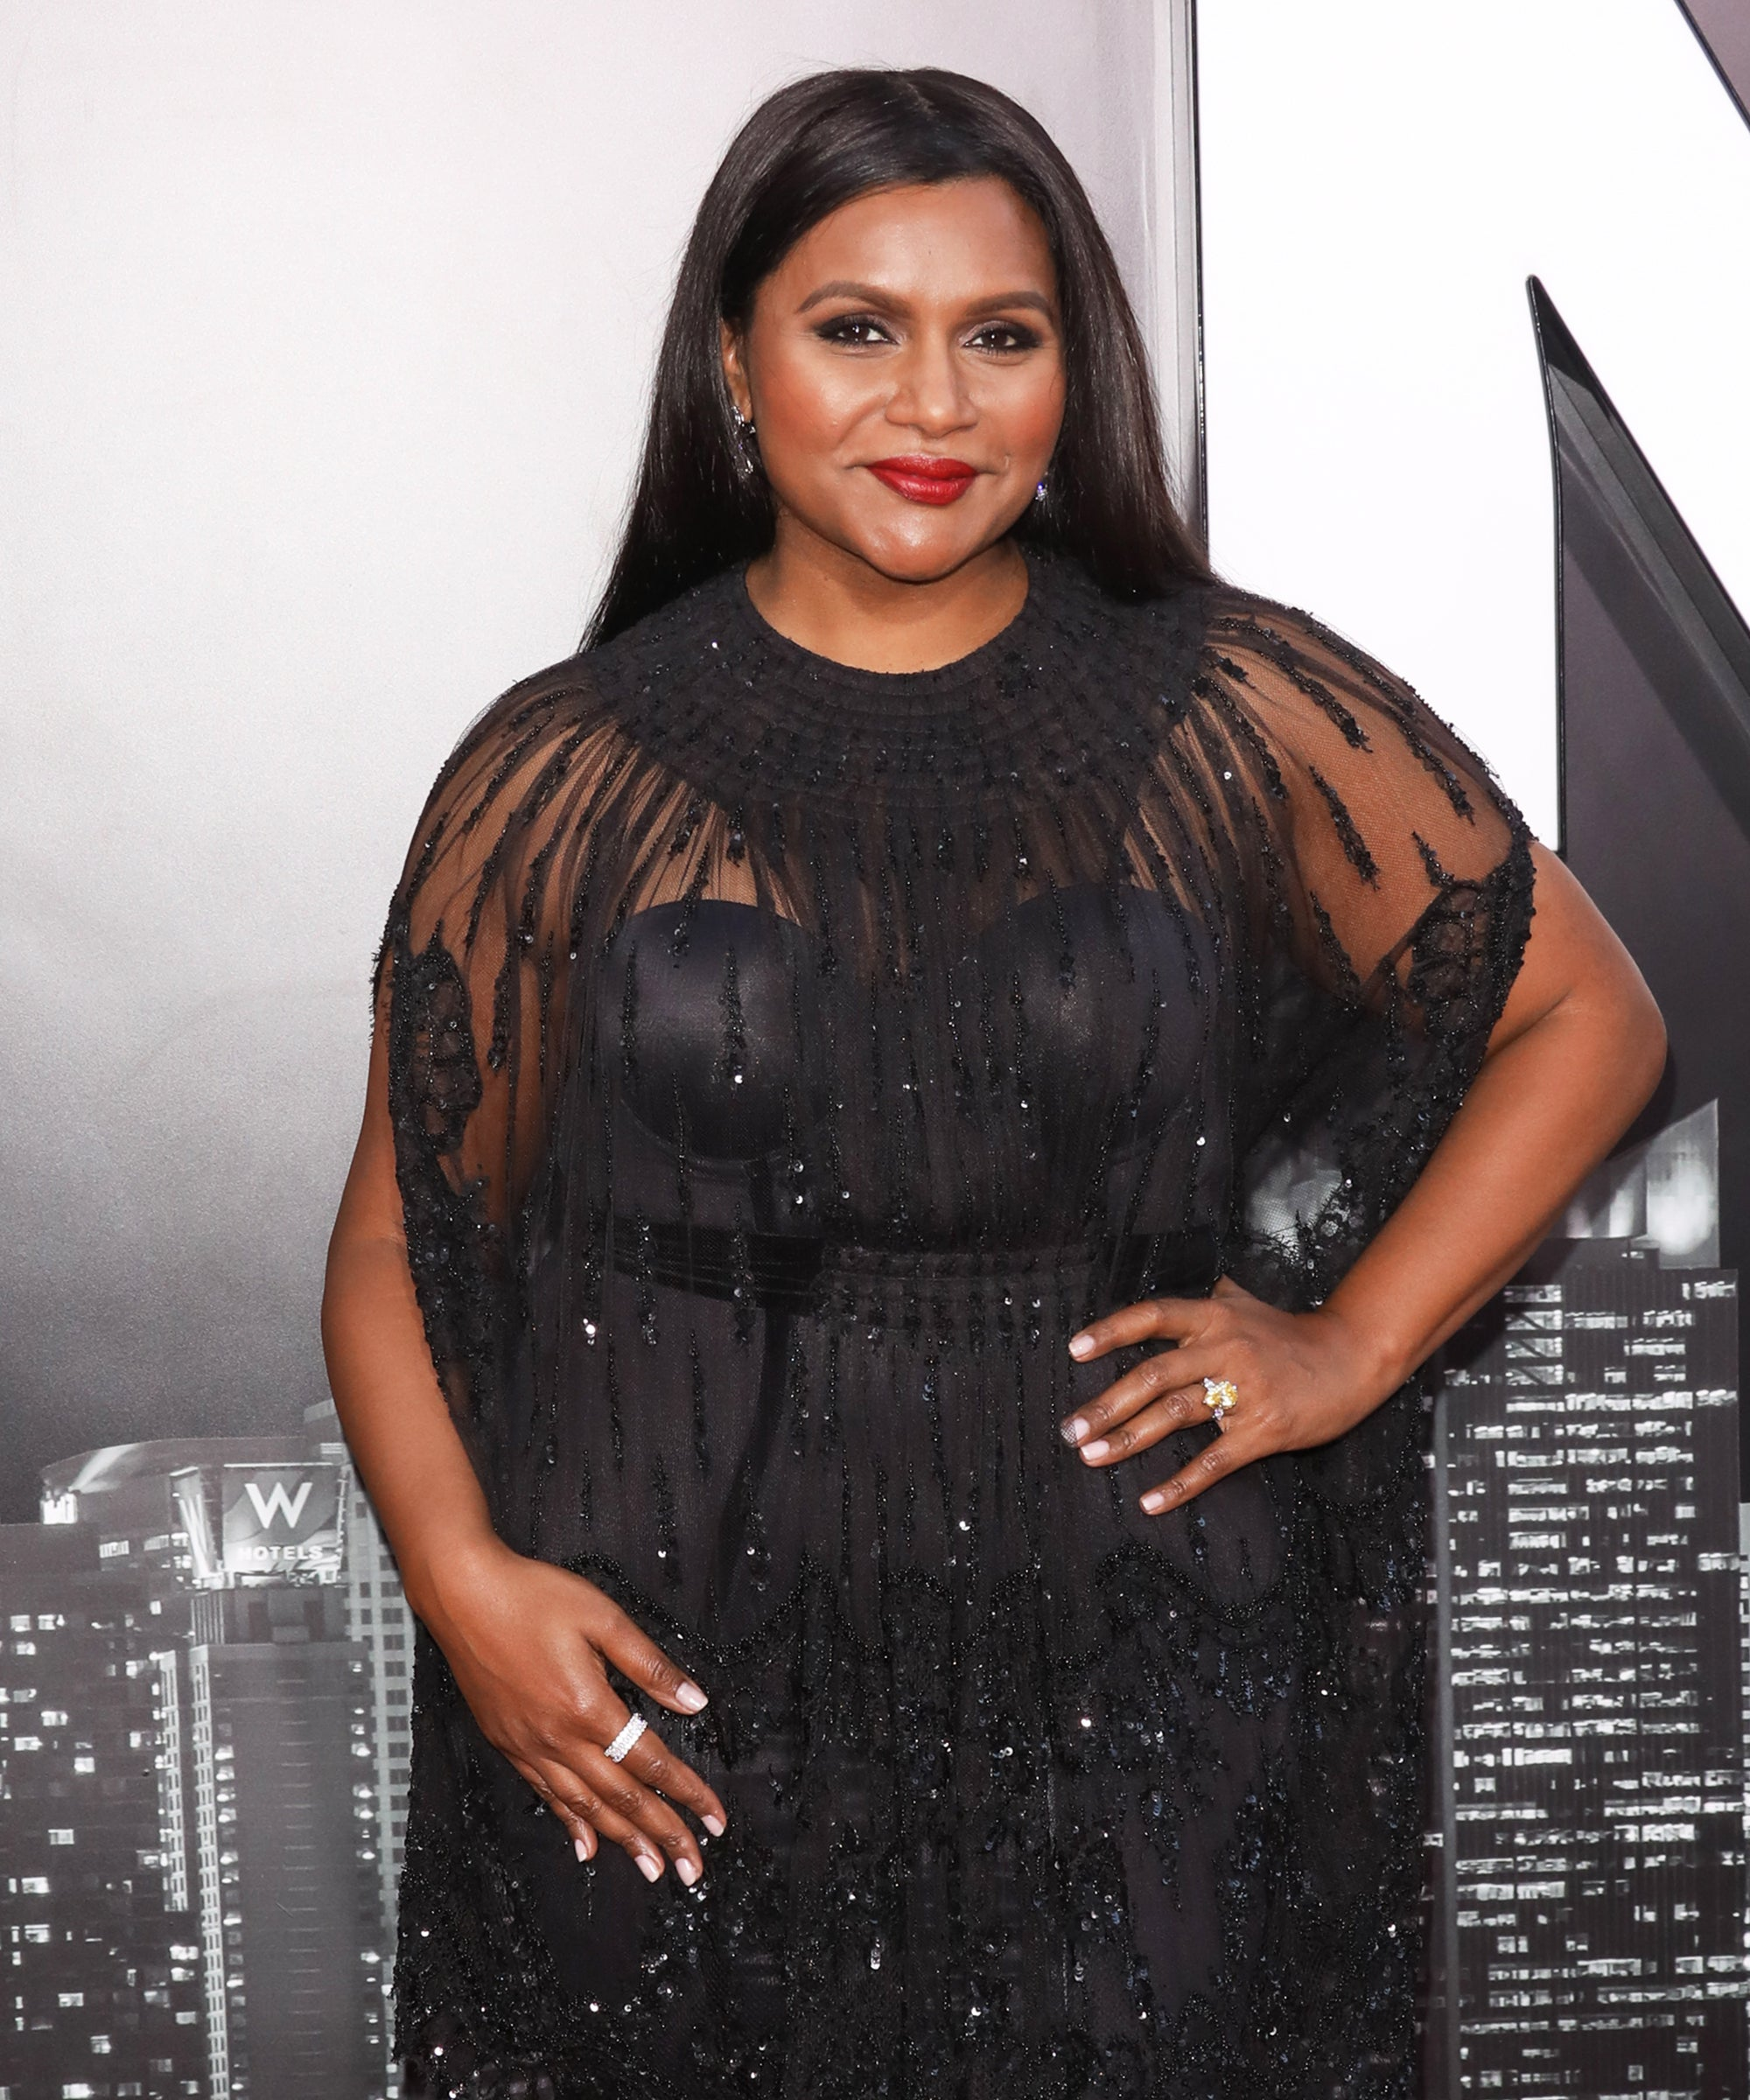 Mindy Kaling Calls Out Emmys For The Office Snub